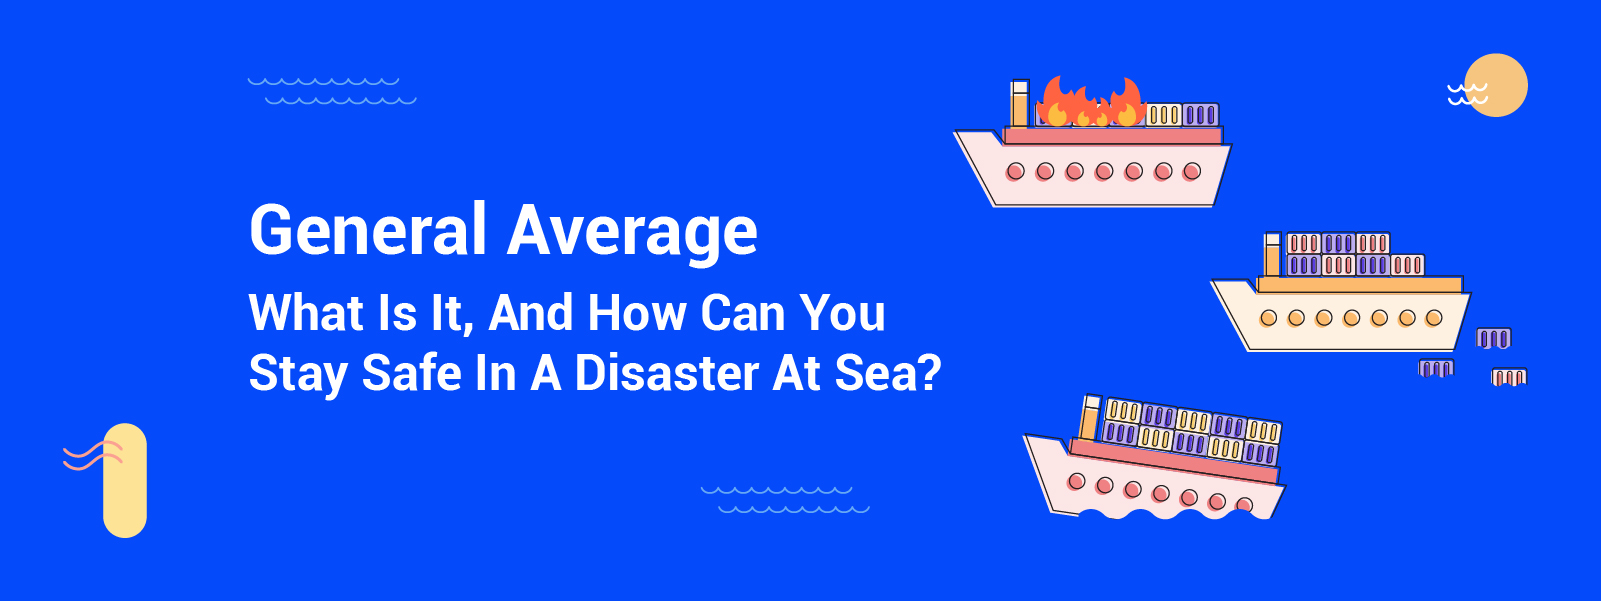 General Average: What Is It, And How Can You Stay Safe In A Disaster At Sea?